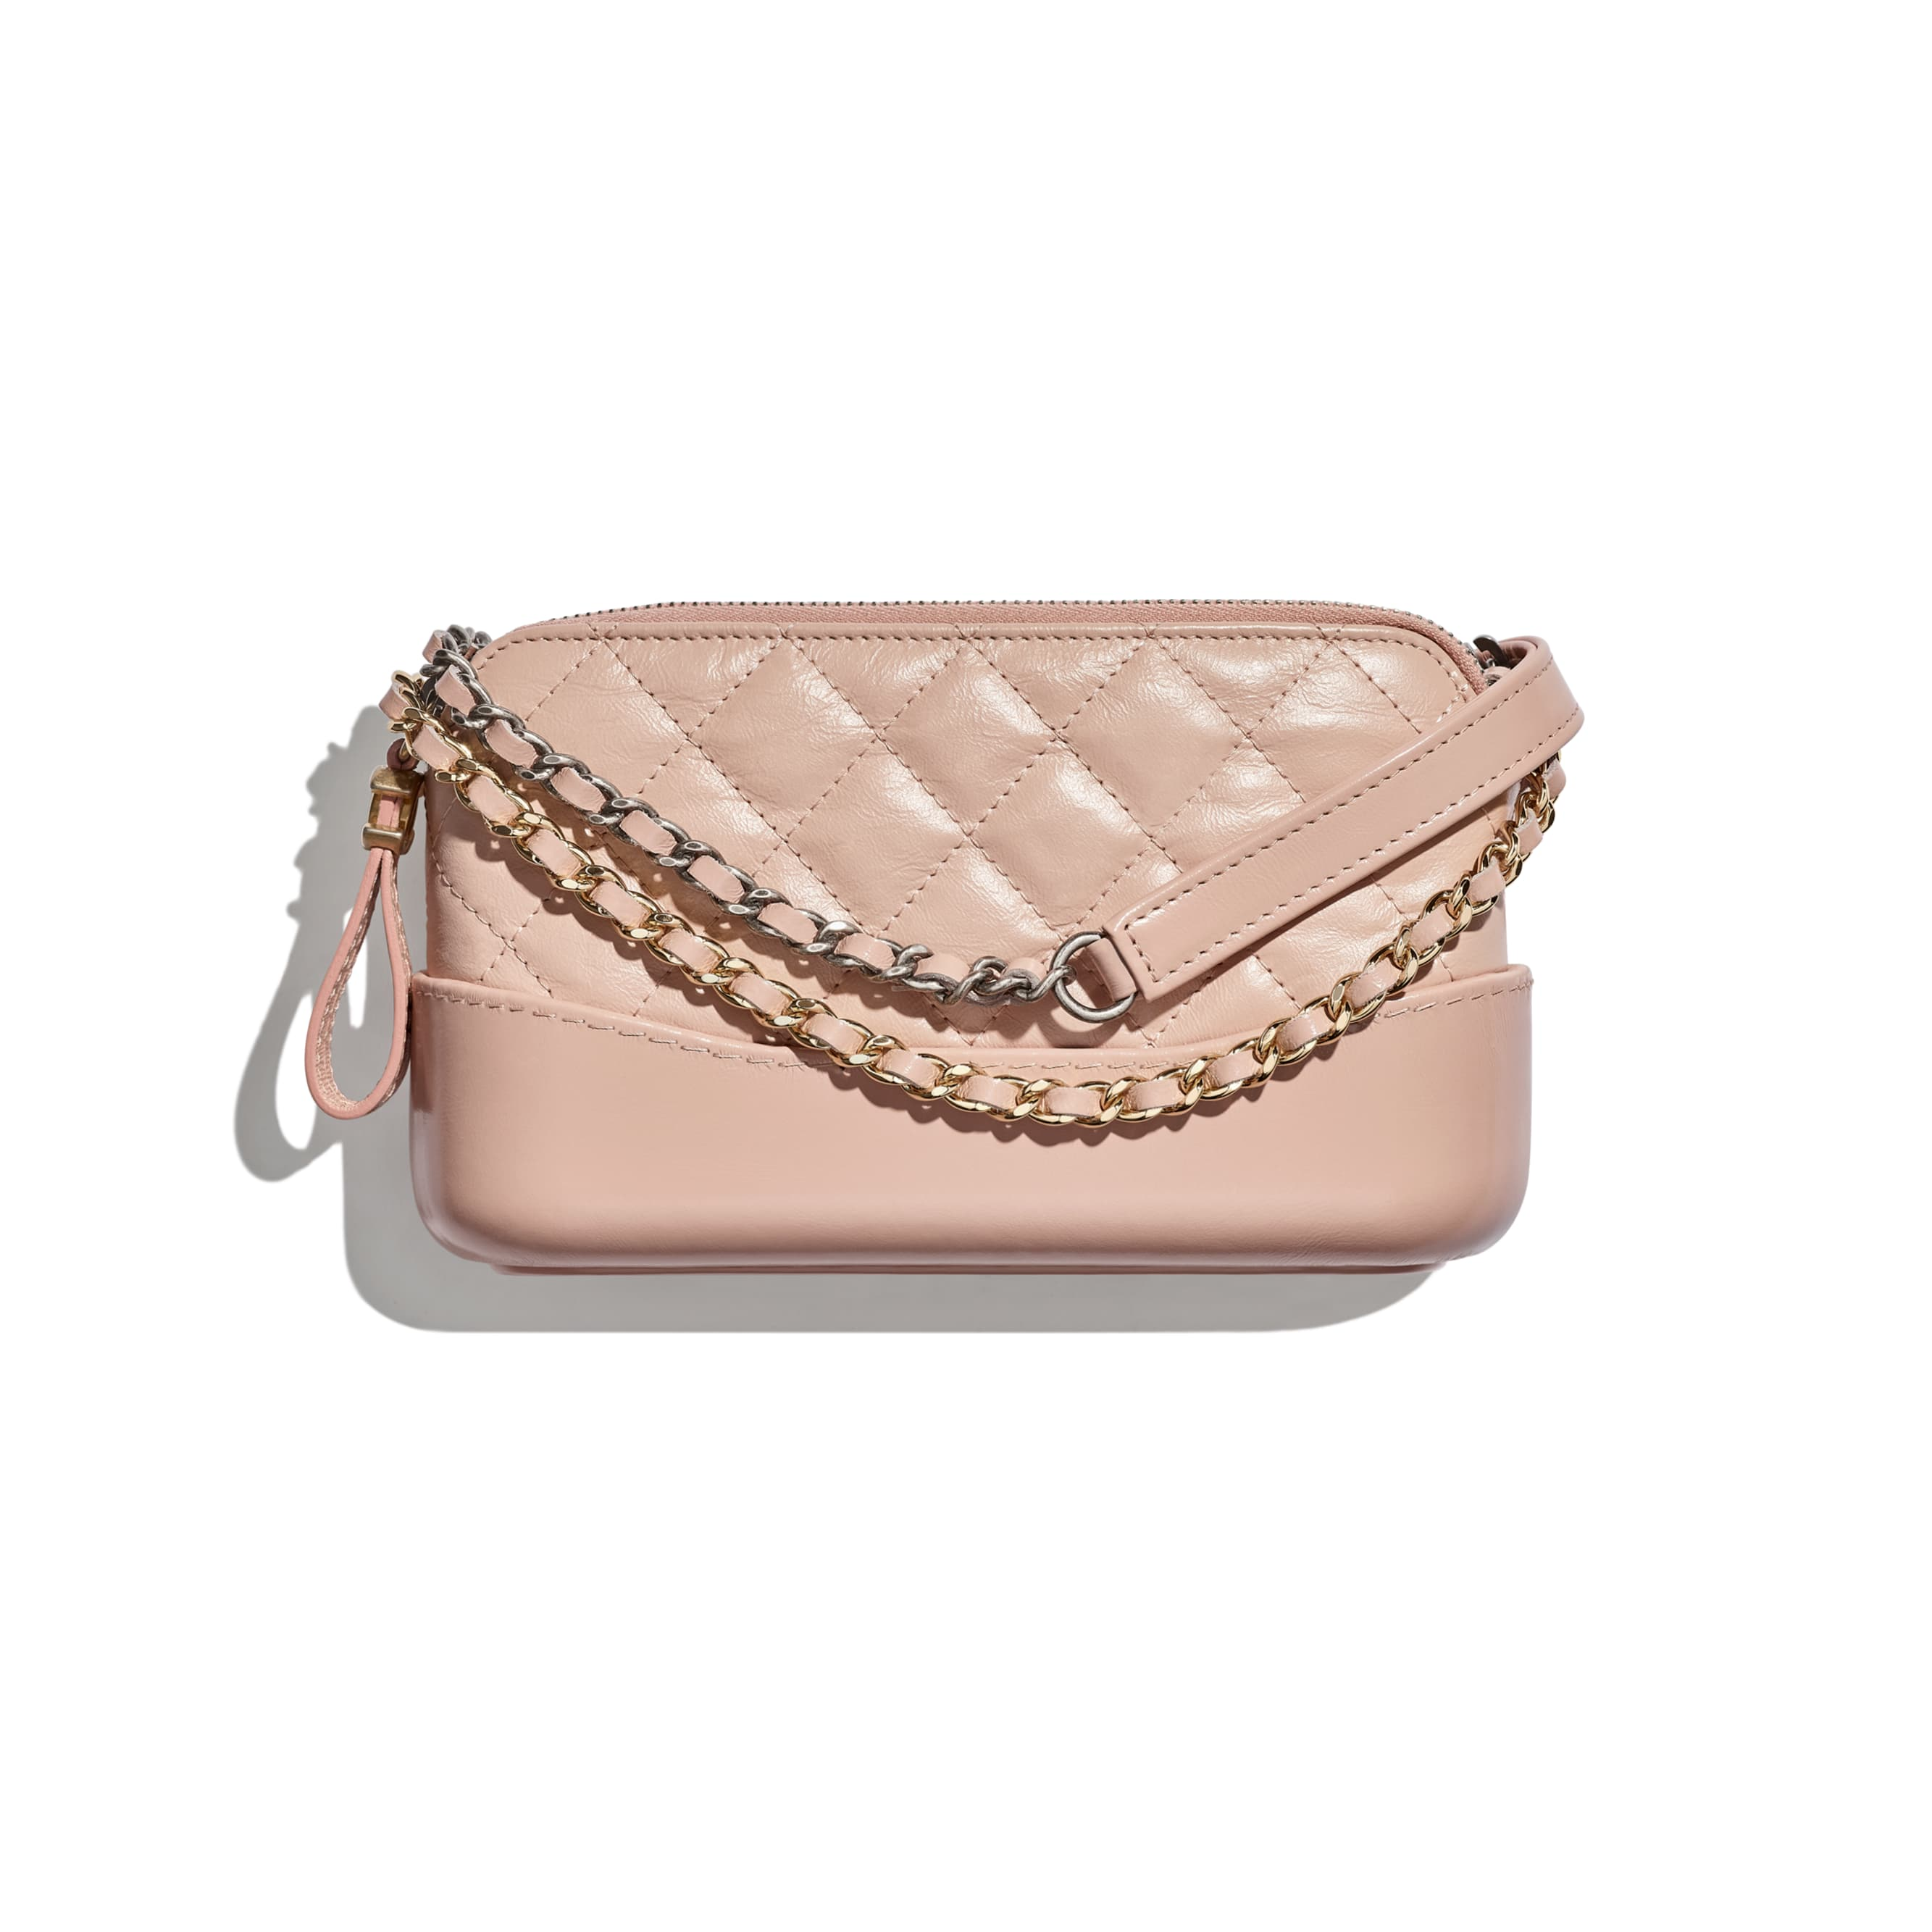 Clutch with Chain - Light Pink - Aged Calfskin, Smooth Calfskin, Gold-Tone, Silver-Tone & Ruthenium-Finish Metal - CHANEL - Default view - see standard sized version